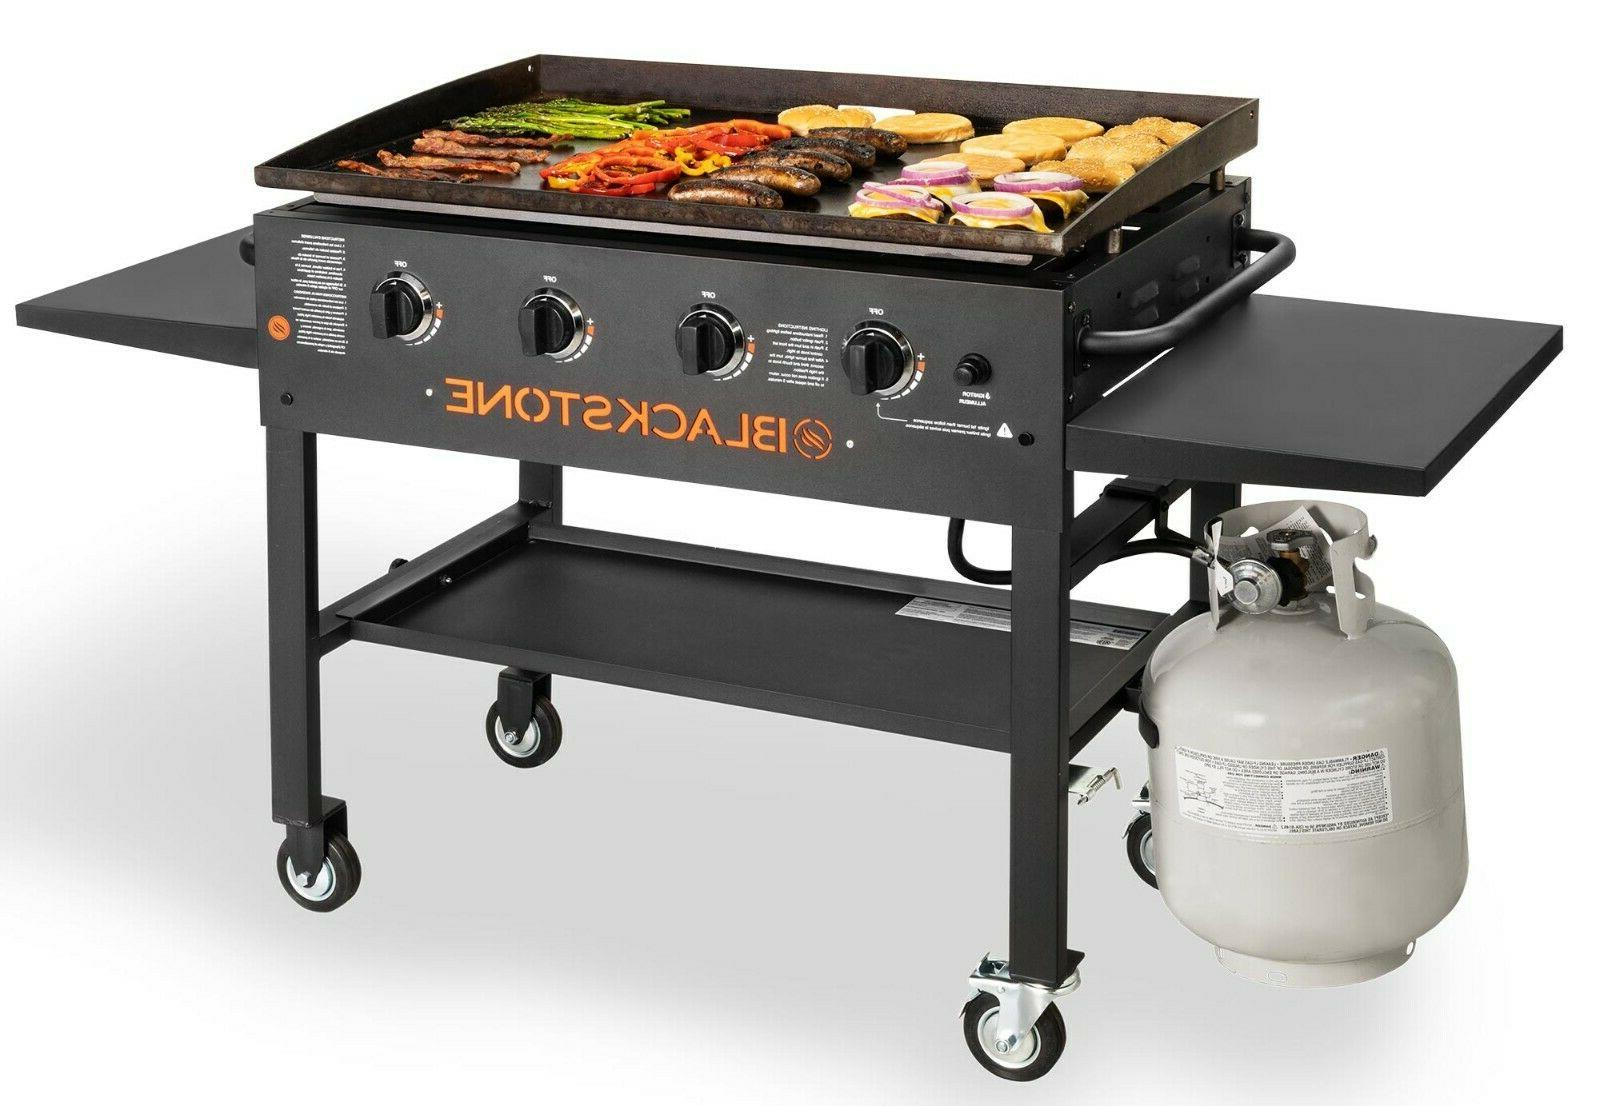 36 in griddle cooking station 4 burner